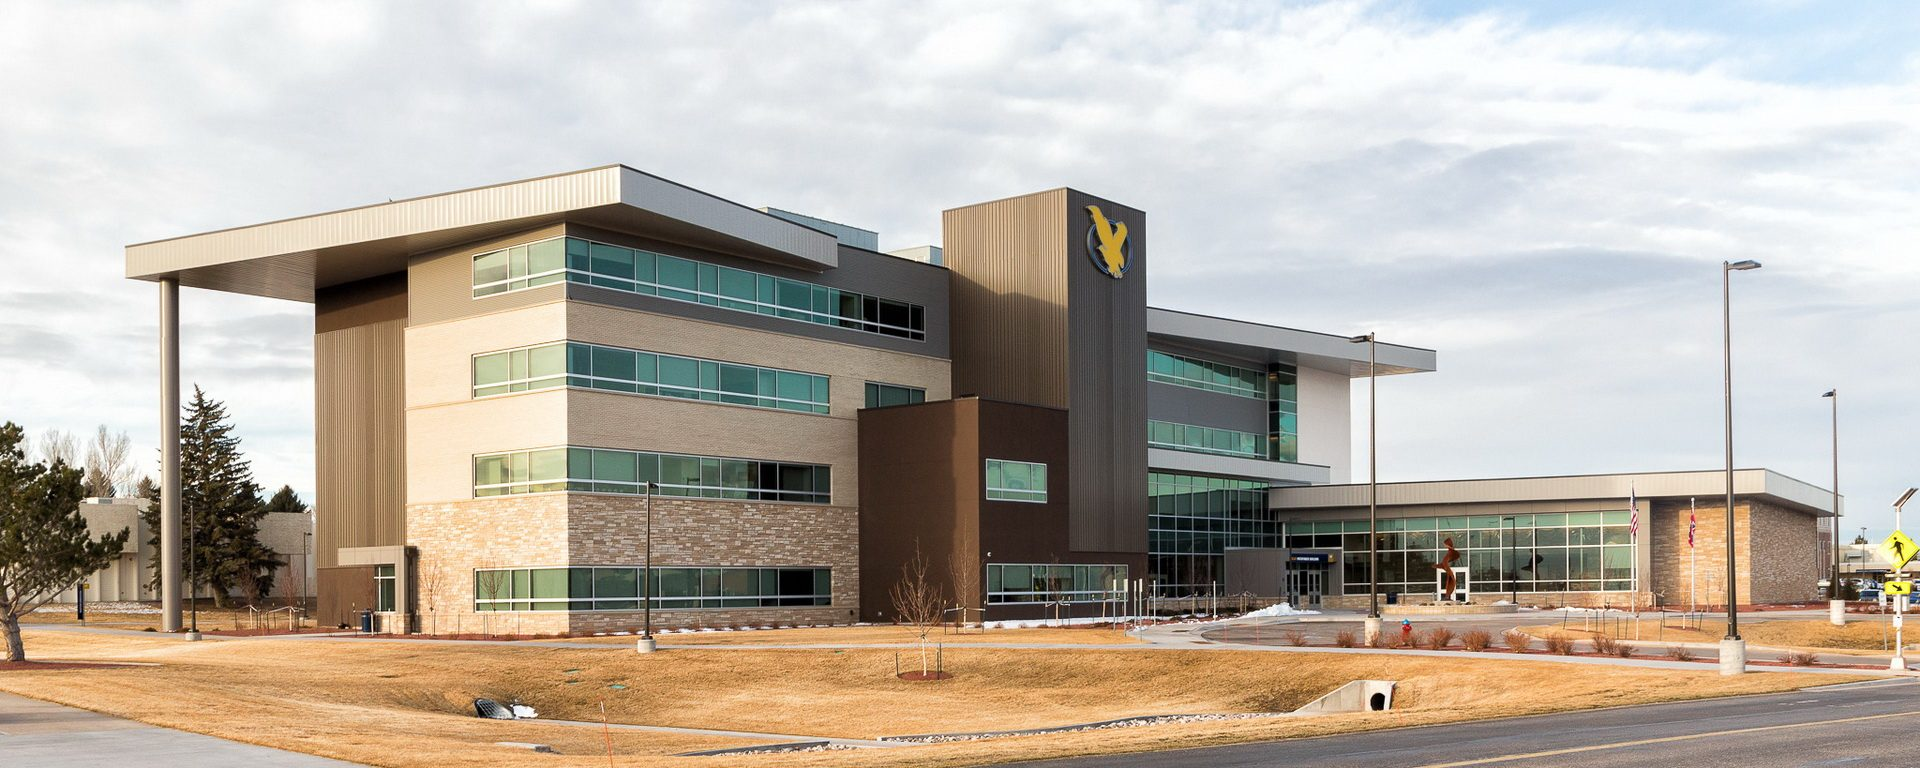 Laramie County Community College Clay Pathfinder Building